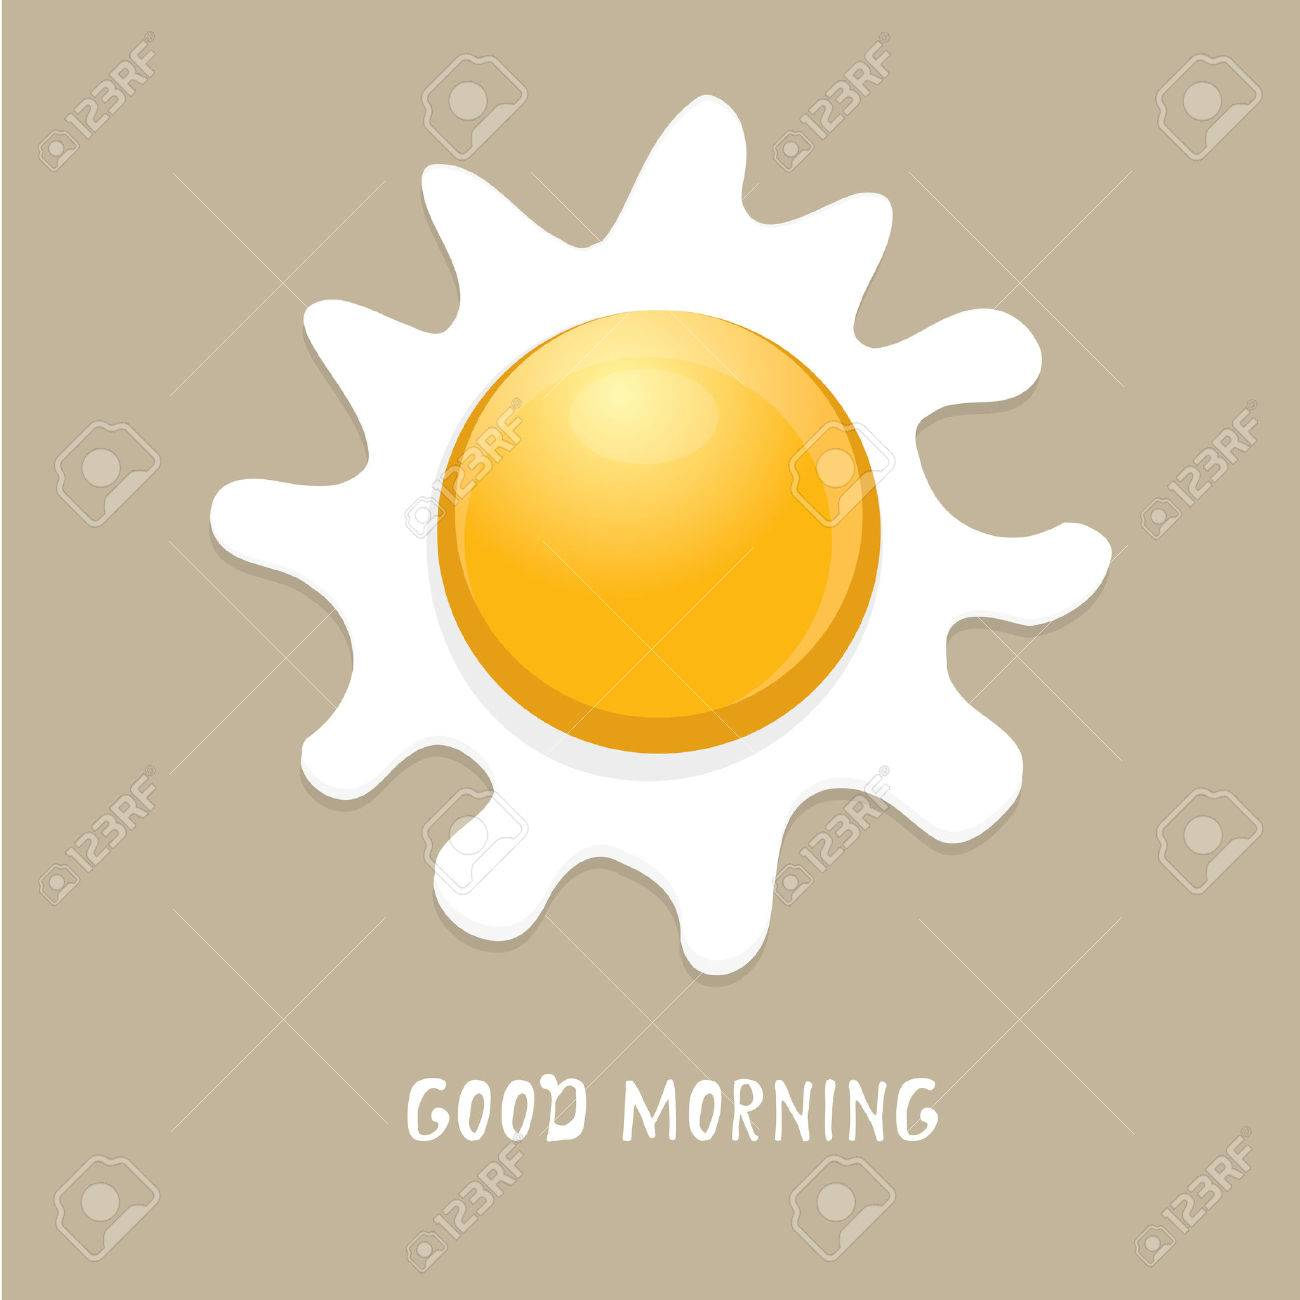 Fried Egg vector illustration. good morning concept. breakfast fried hen or chicken egg with a orange yolk in the centre of the fried egg. - 44950130